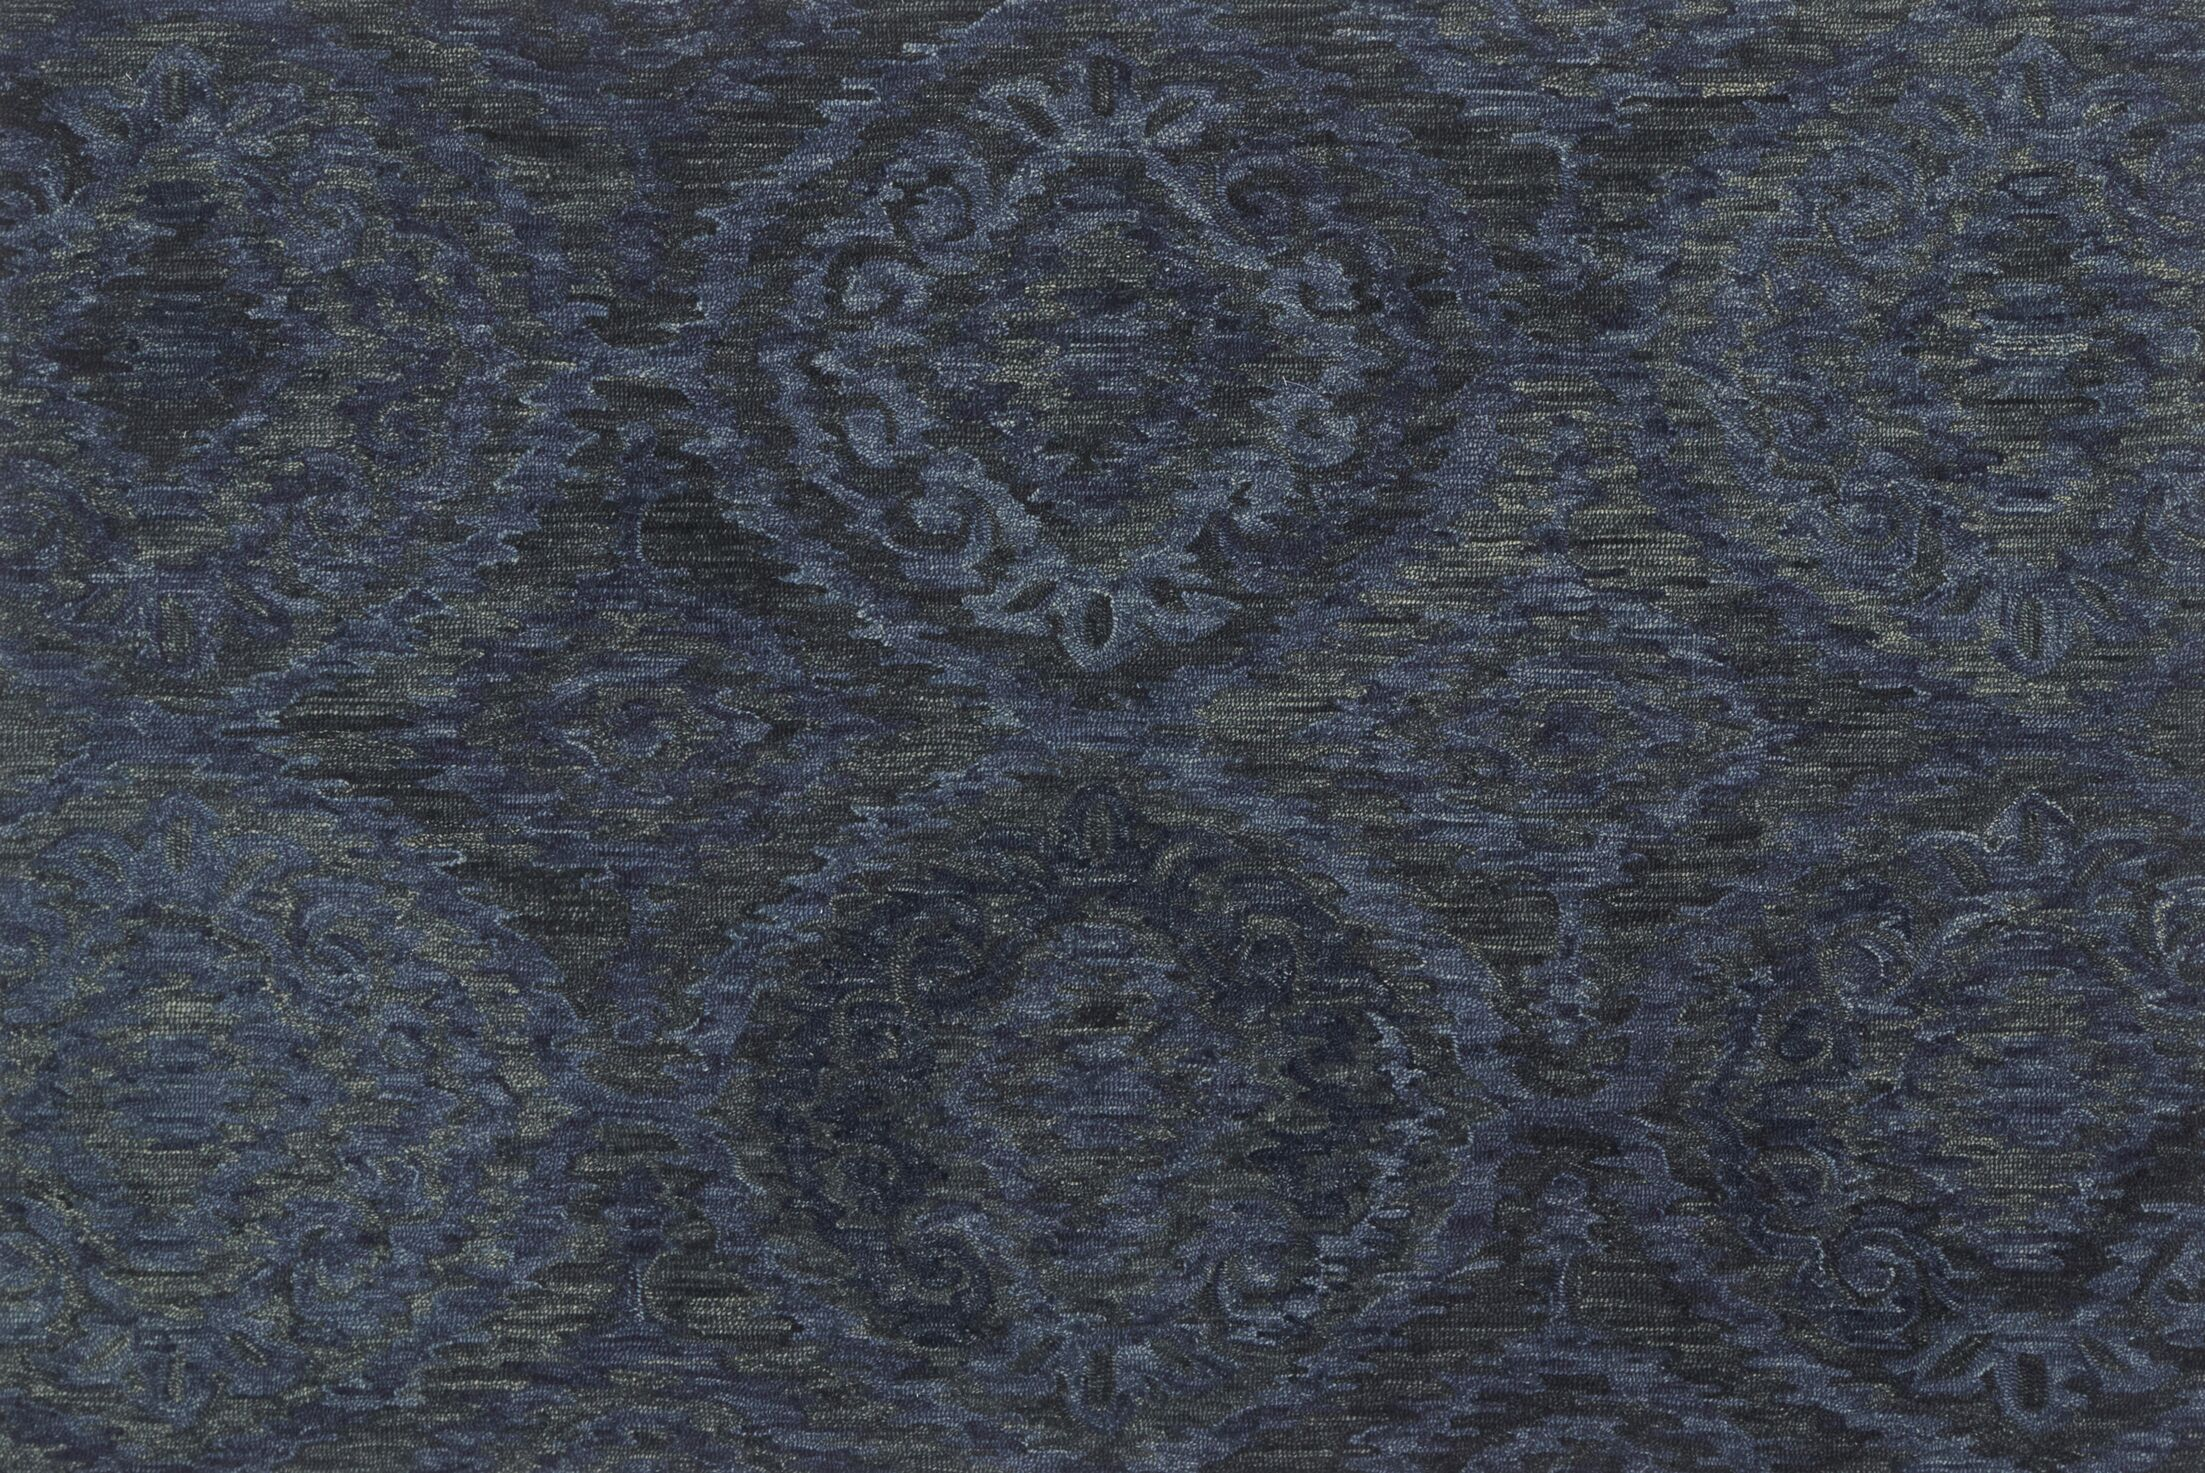 Cherrelle Hand-Hooked Wool Navy Area Rug  Rug Size: Rectangle 5' x 7'6